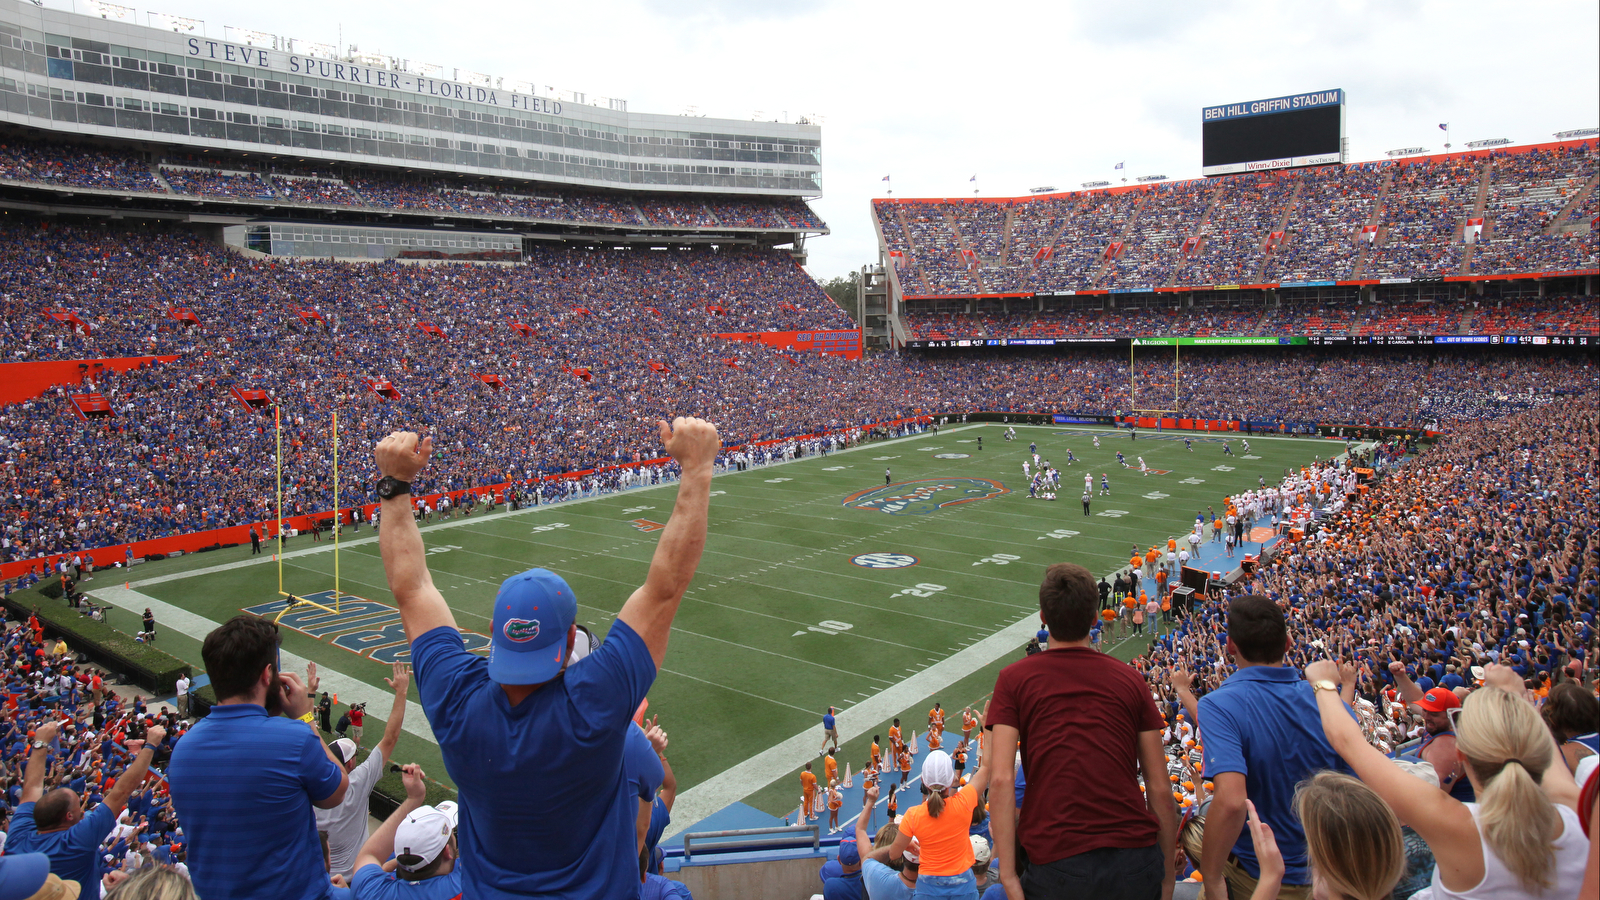 picture relating to Fsu Football Schedule Printable called Corrected: Gators Launch 2018 Soccer Plan - Florida